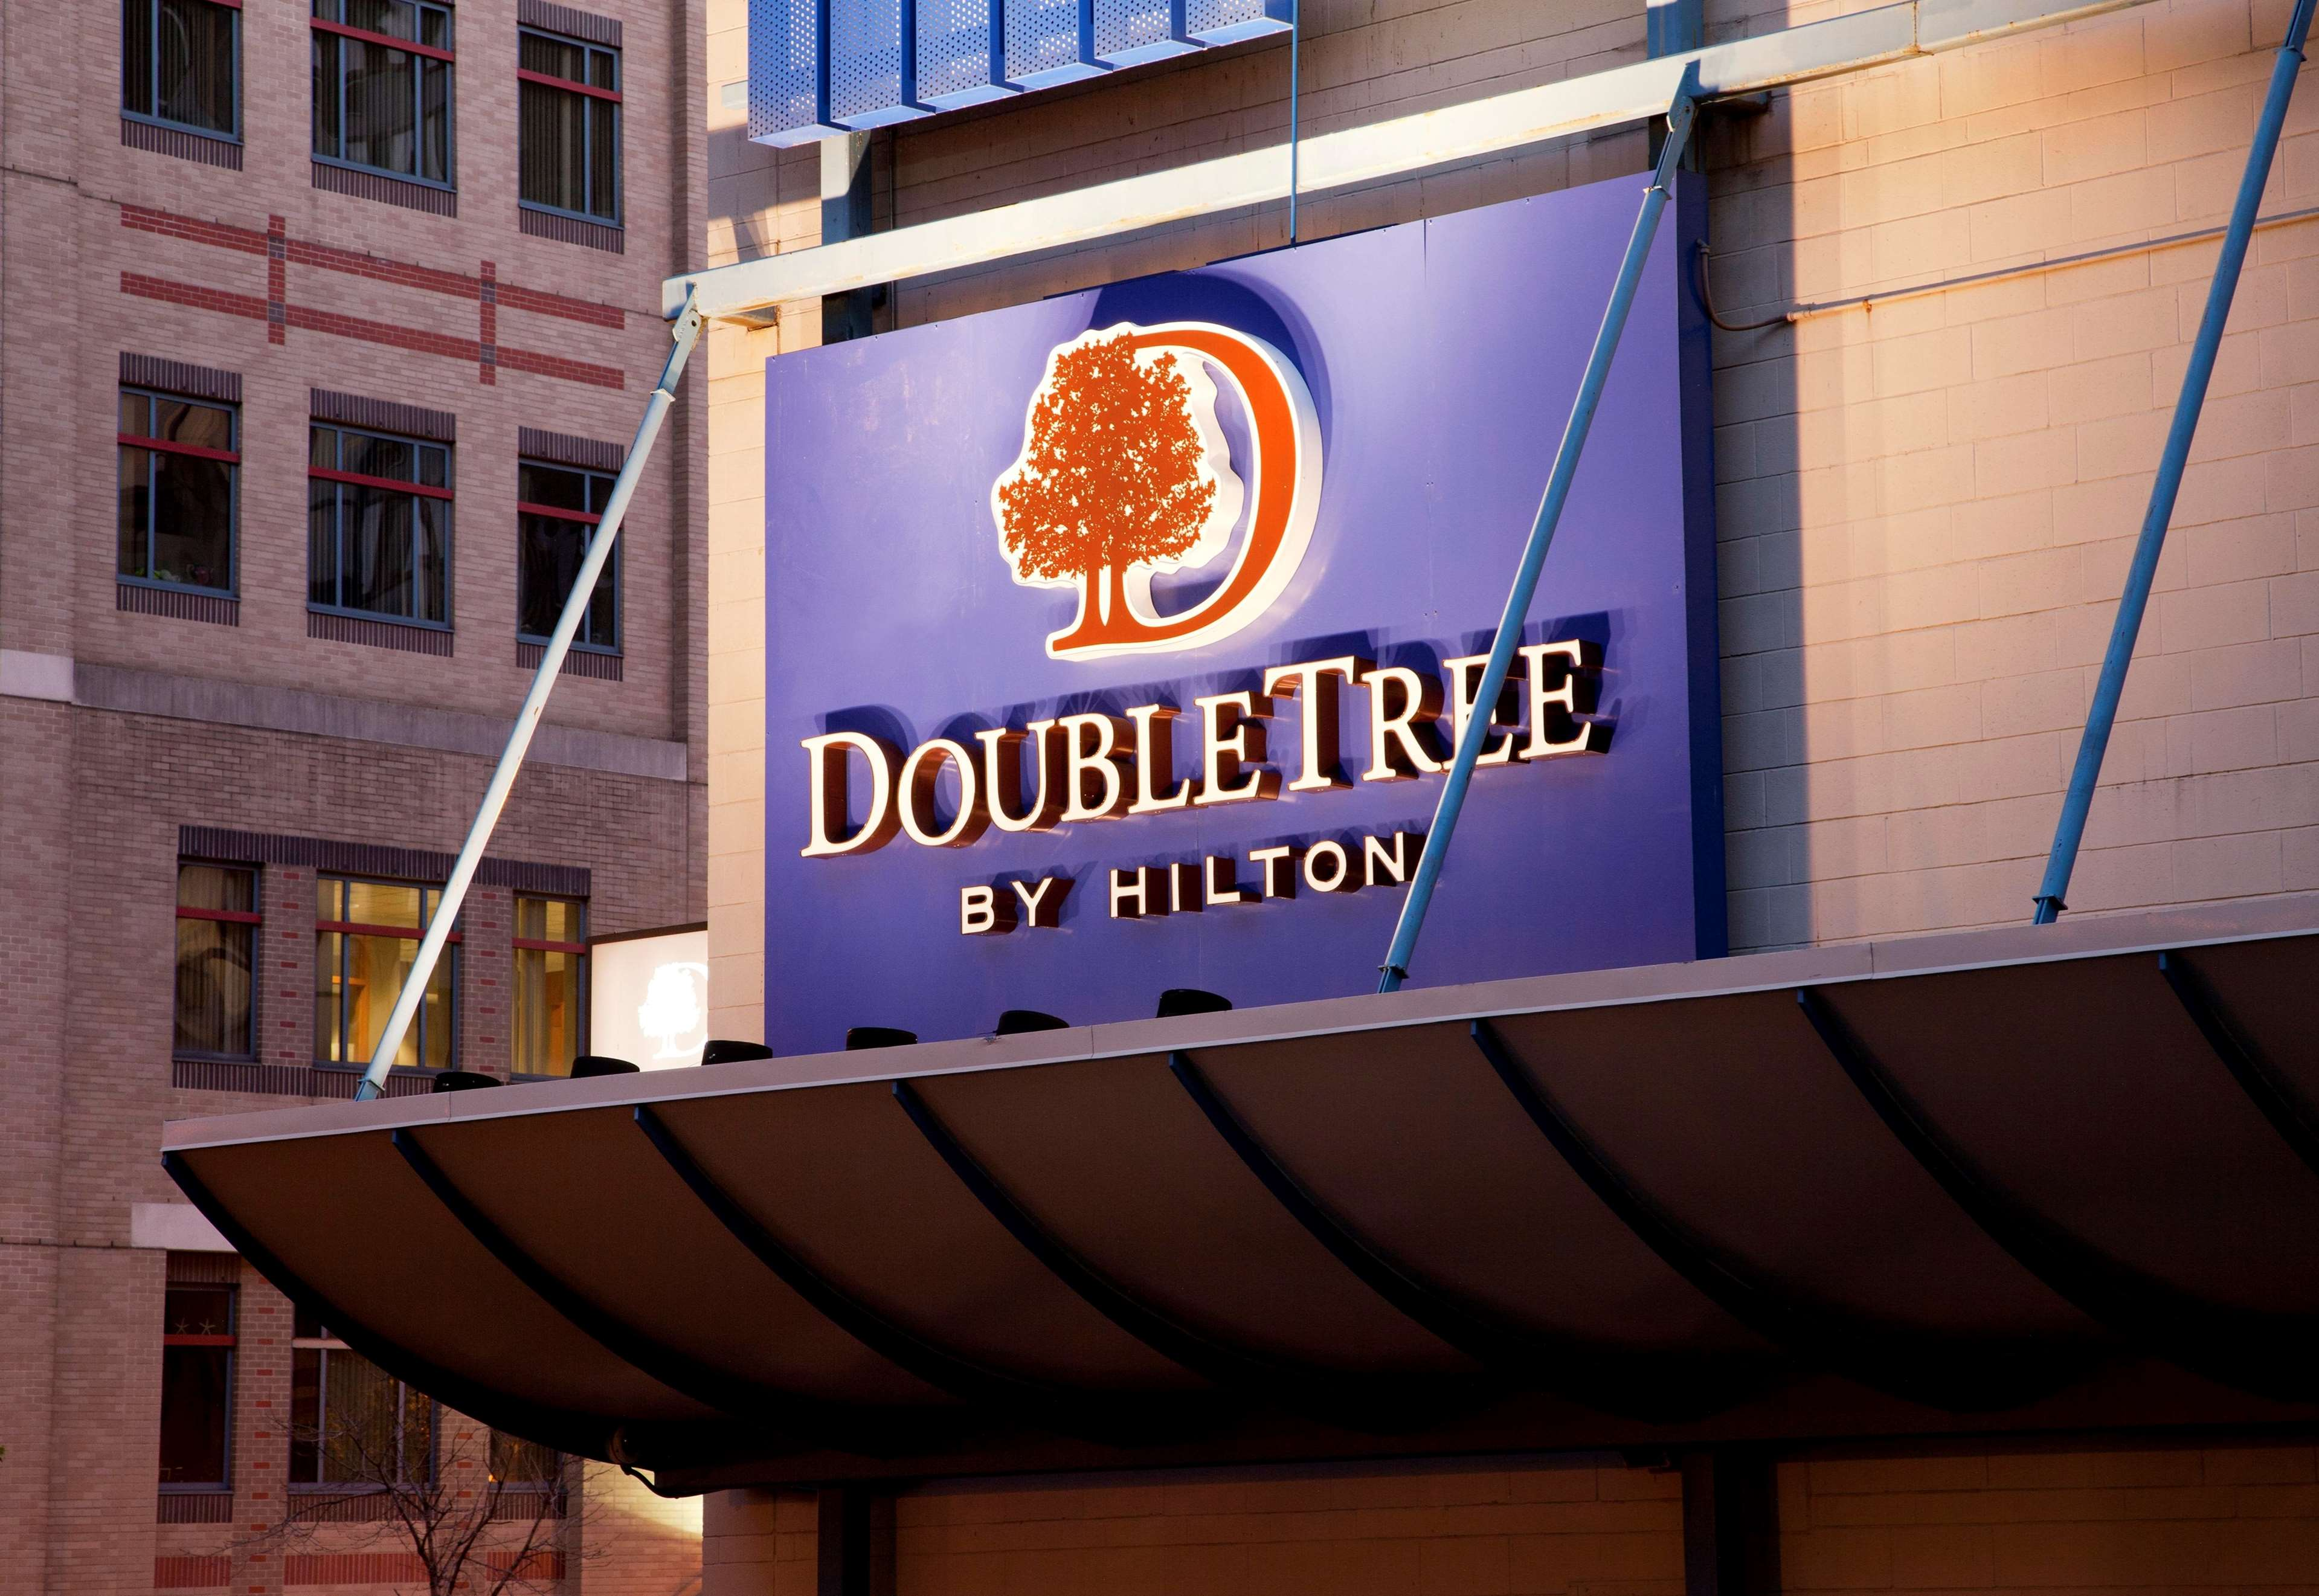 boston business downtown facility meeting Find listings for all conference centers in massachusetts find a conference center or meeting center for business meetings, with lodging, dining, breakout rooms, amenities with maps.